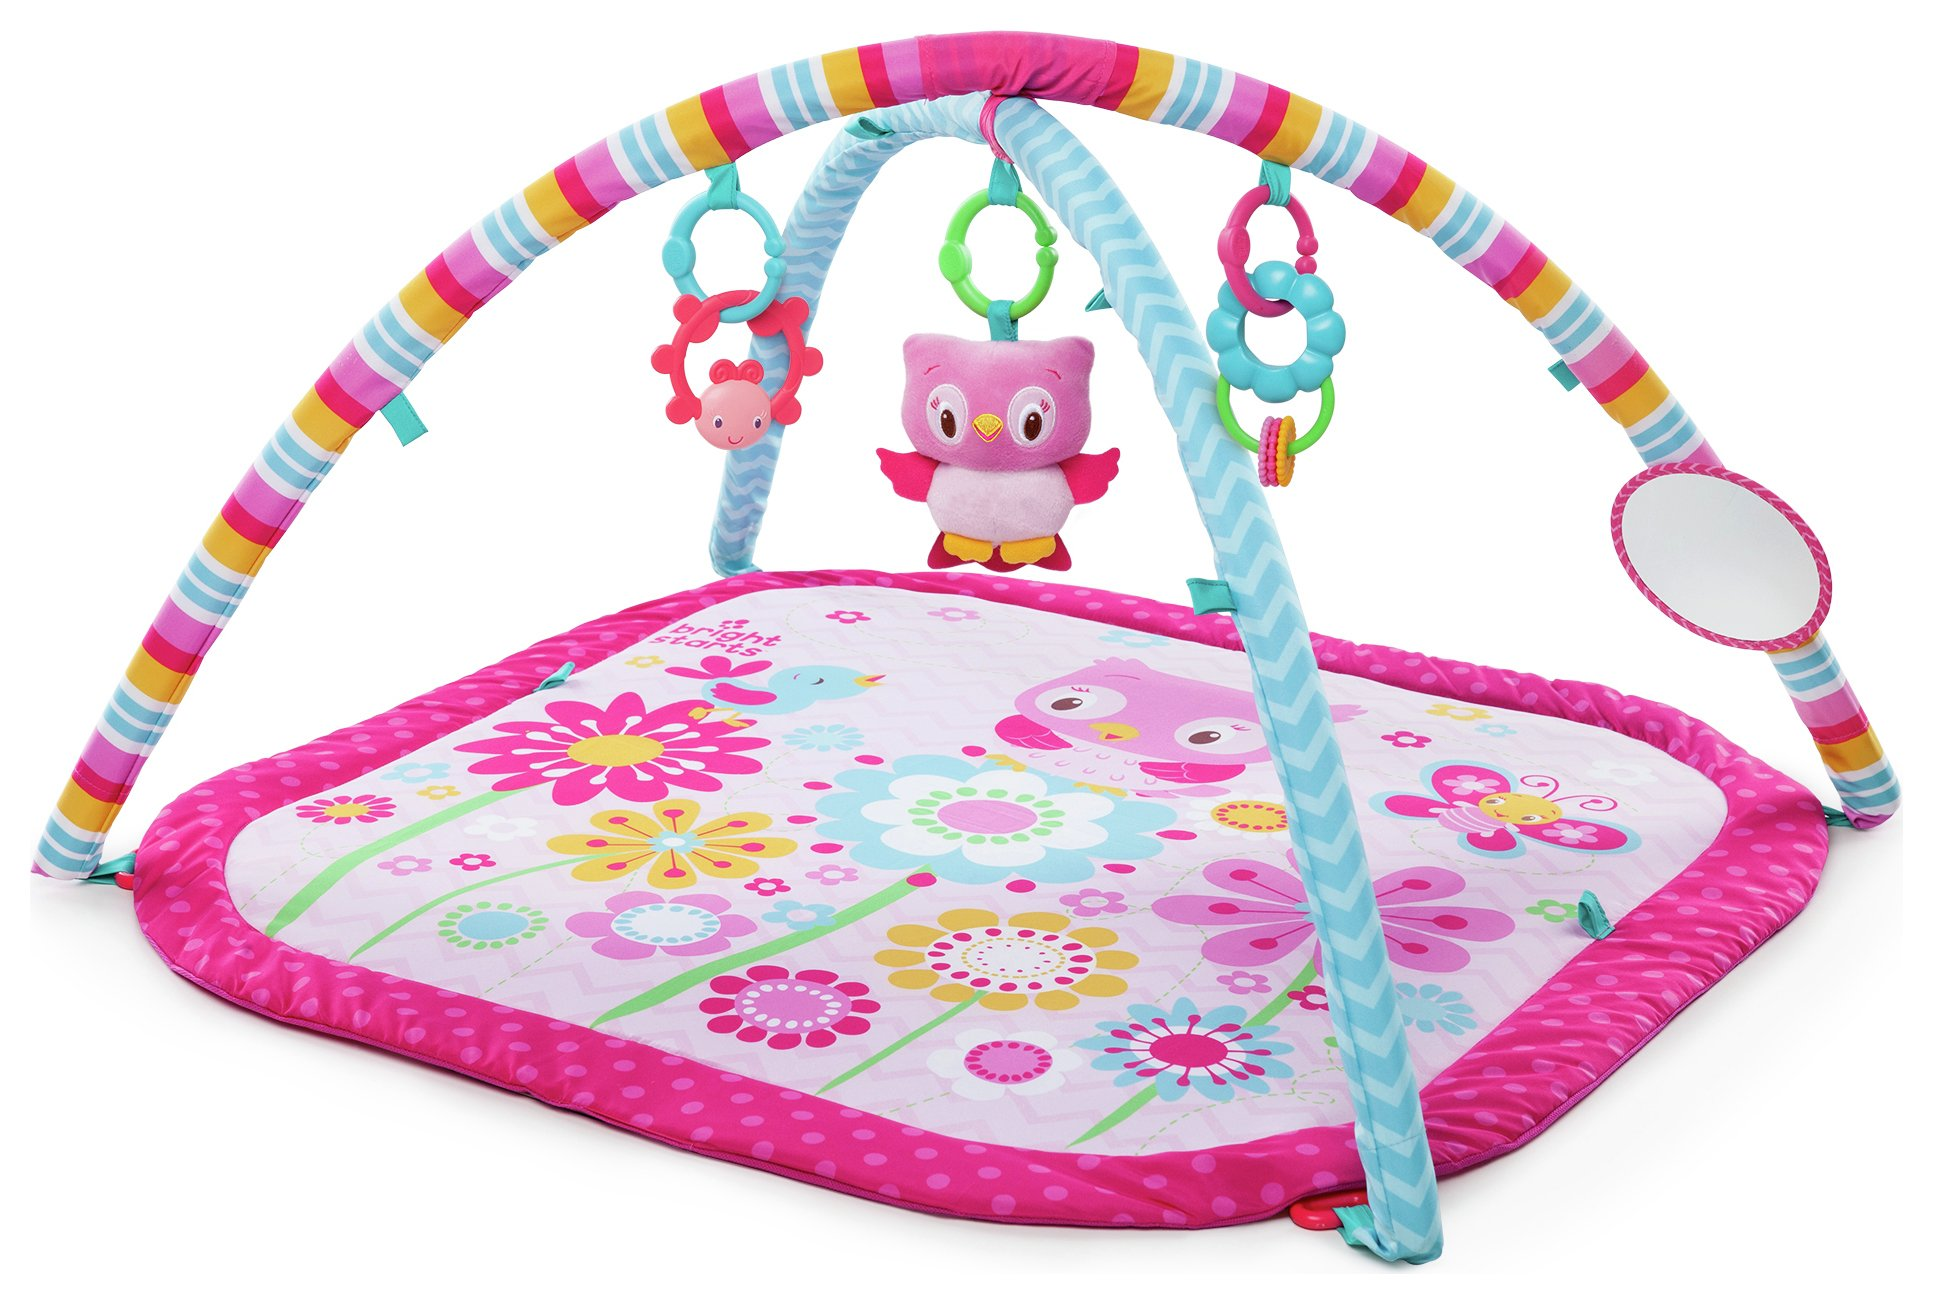 Bright Starts - Pretty in Pink Fancy Flowers Activity Gym